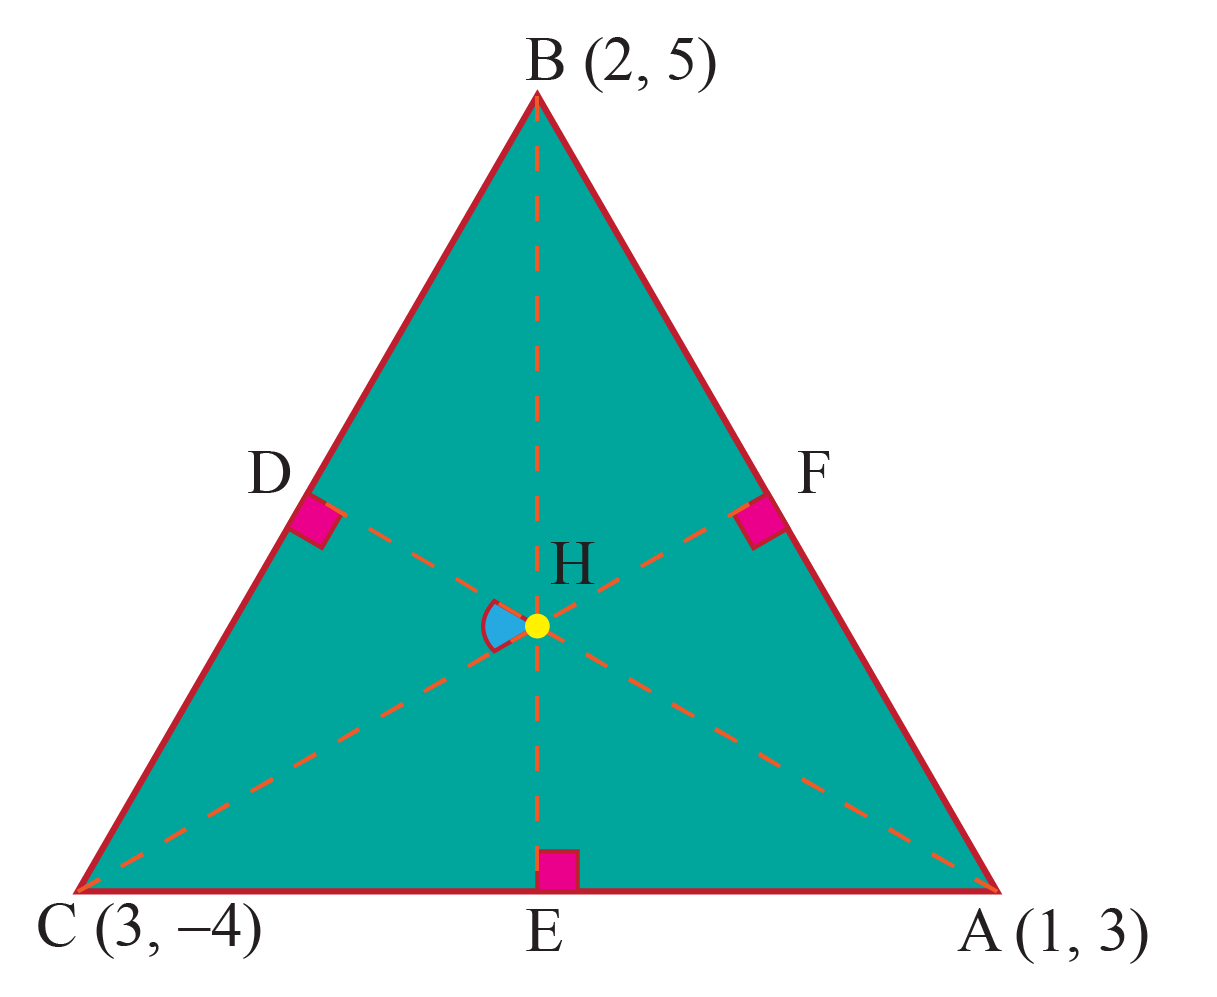 A triangle ABC with orthocenter H